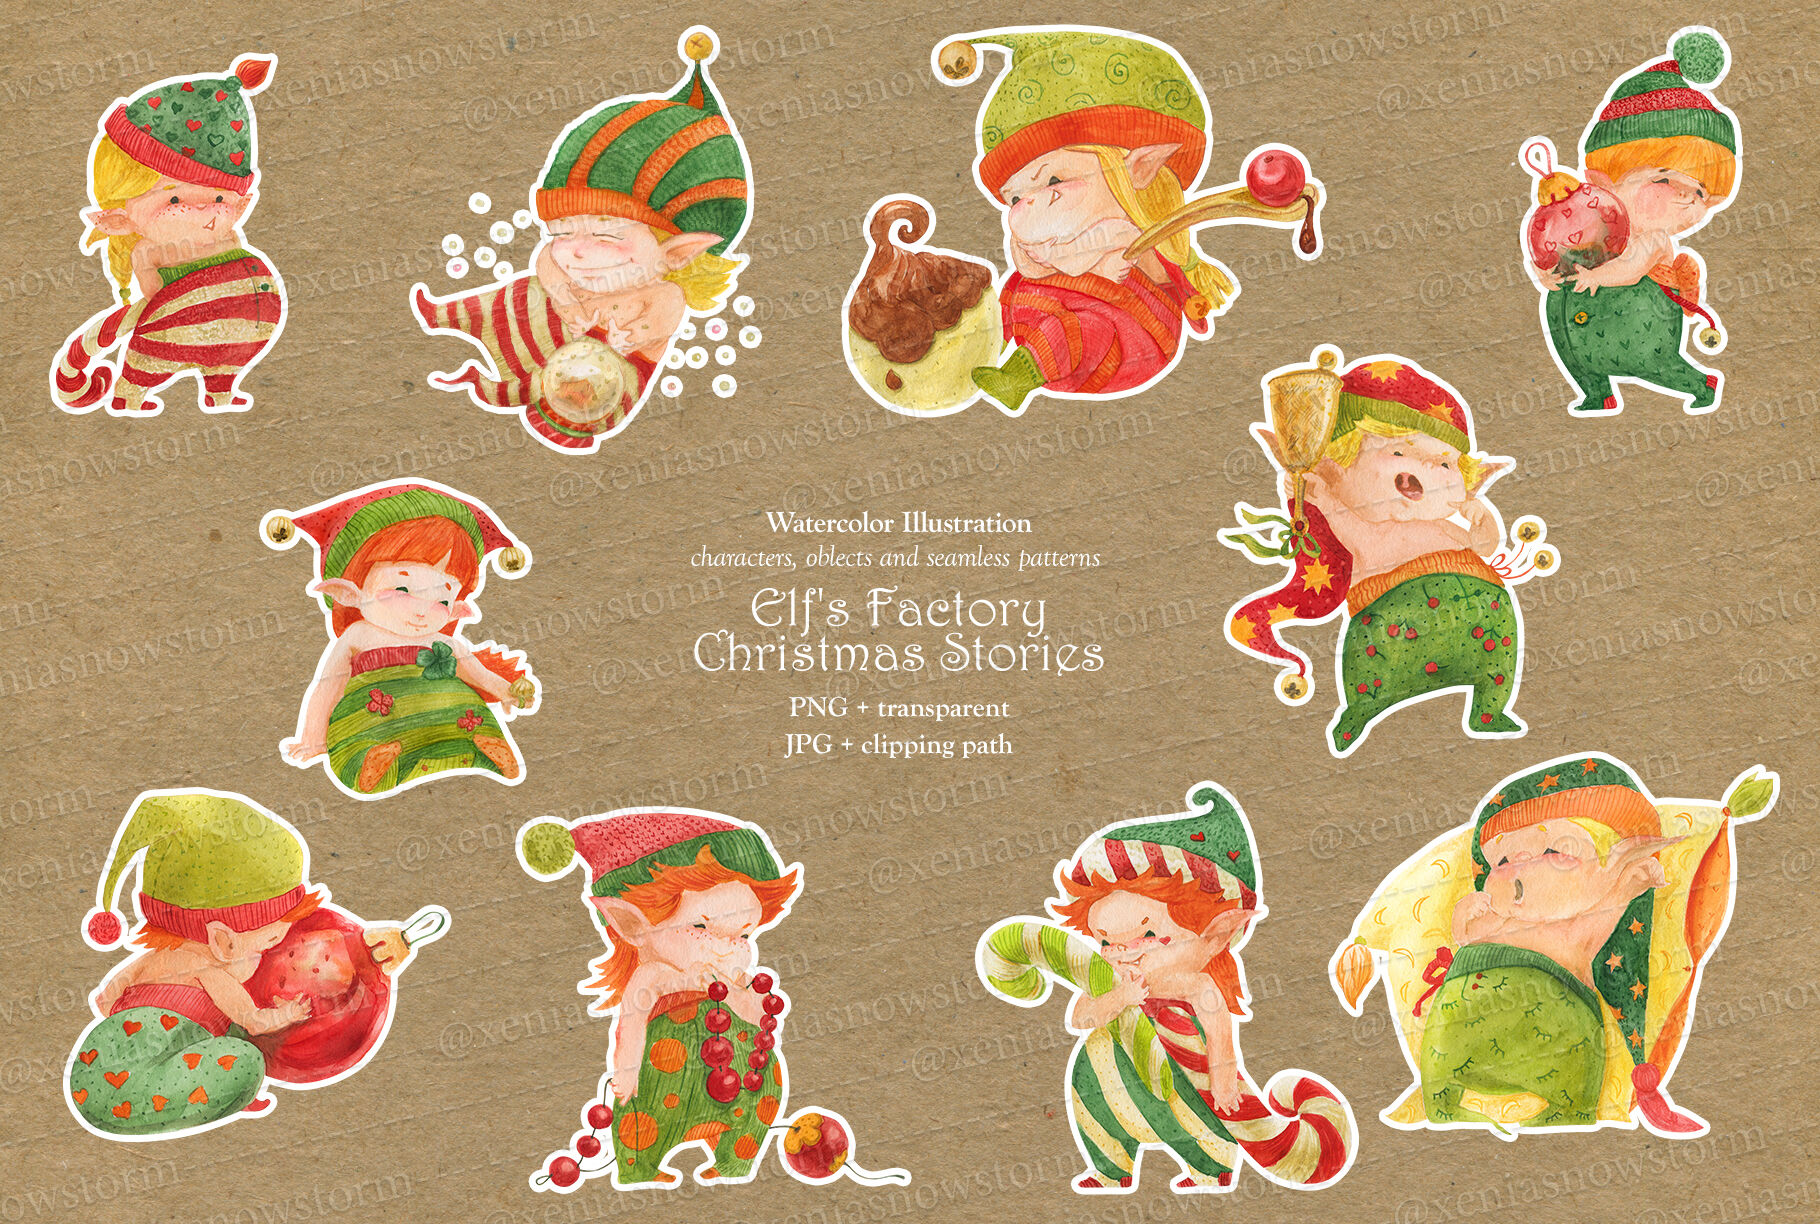 Elf S Factory Christmas Stories By Snowstorm S Box Thehungryjpeg Com